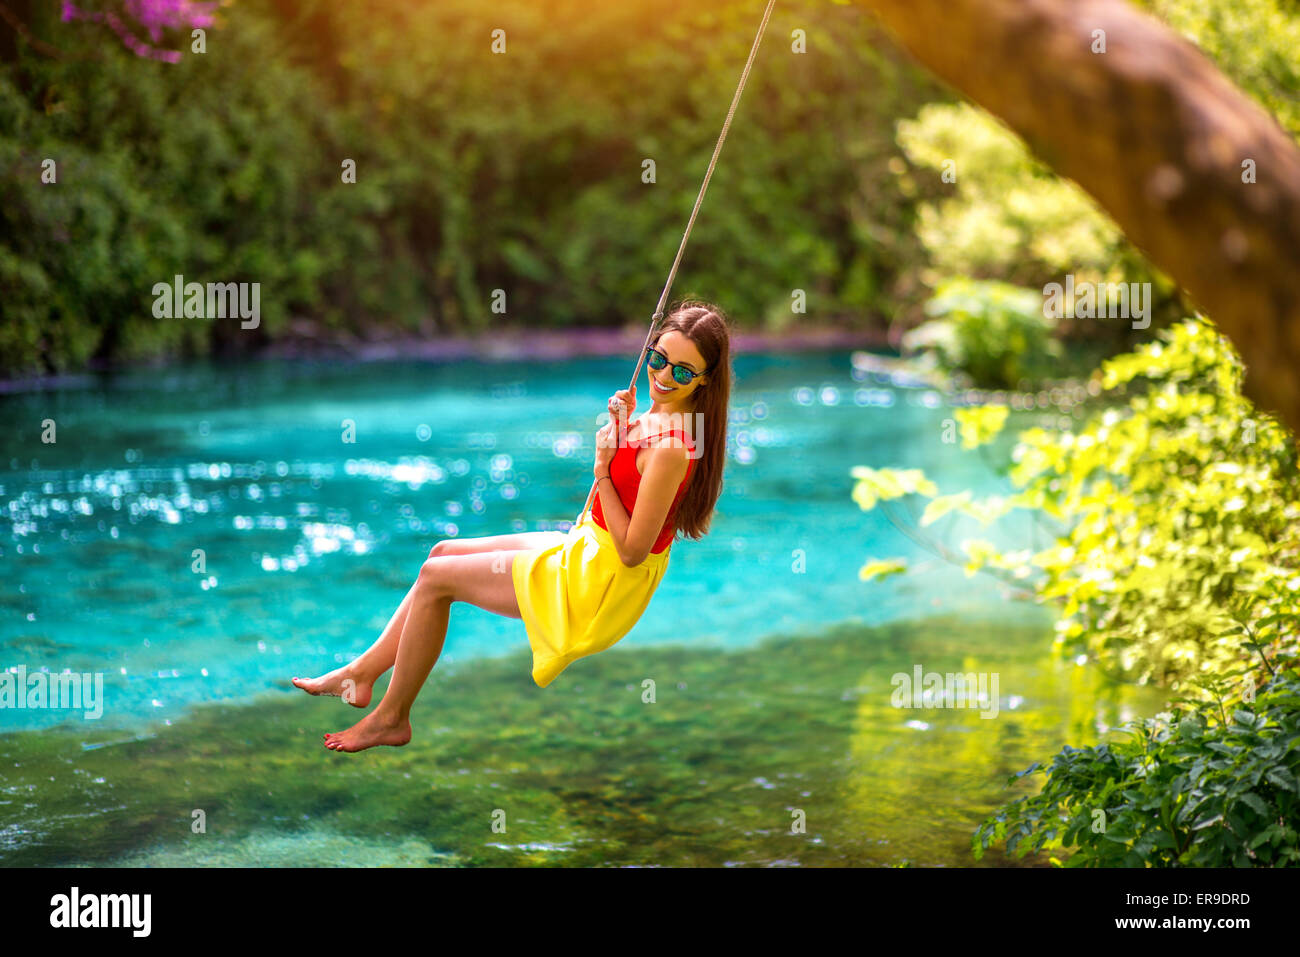 Woman swinging on the river - Stock Image